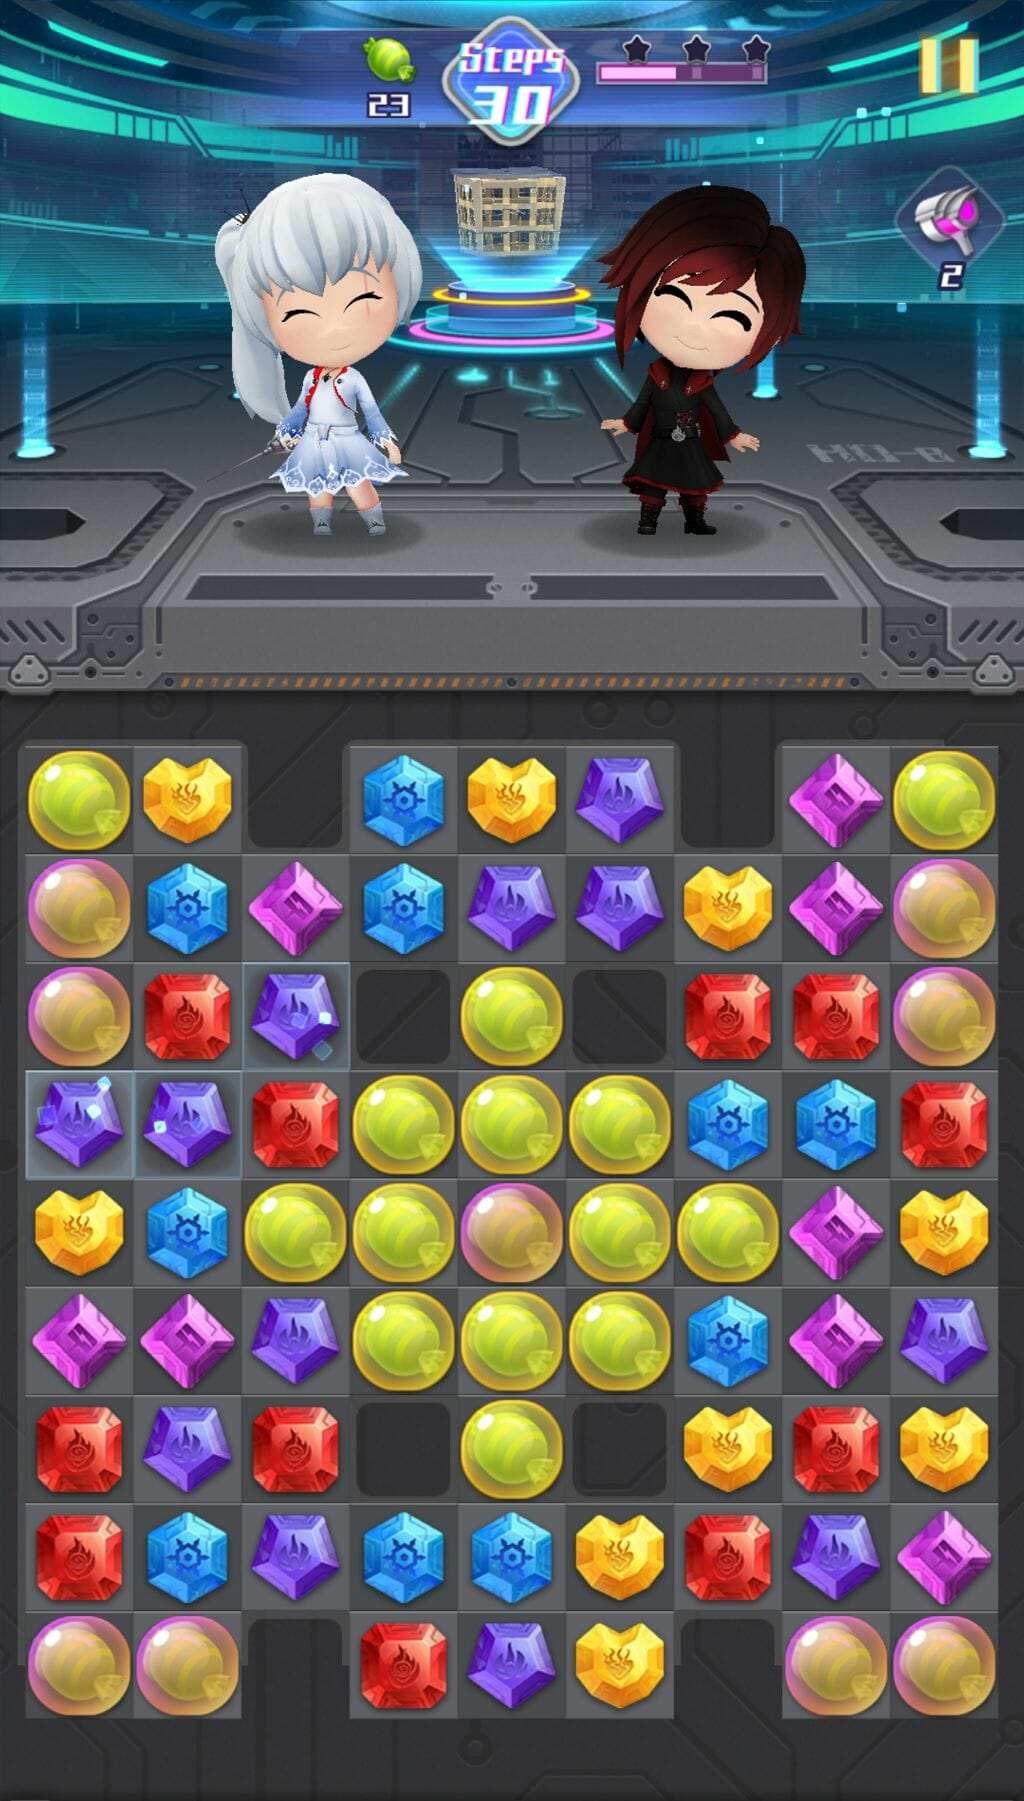 Crunchyroll Games Announces RWBY: Crystal Quest Mobile Game